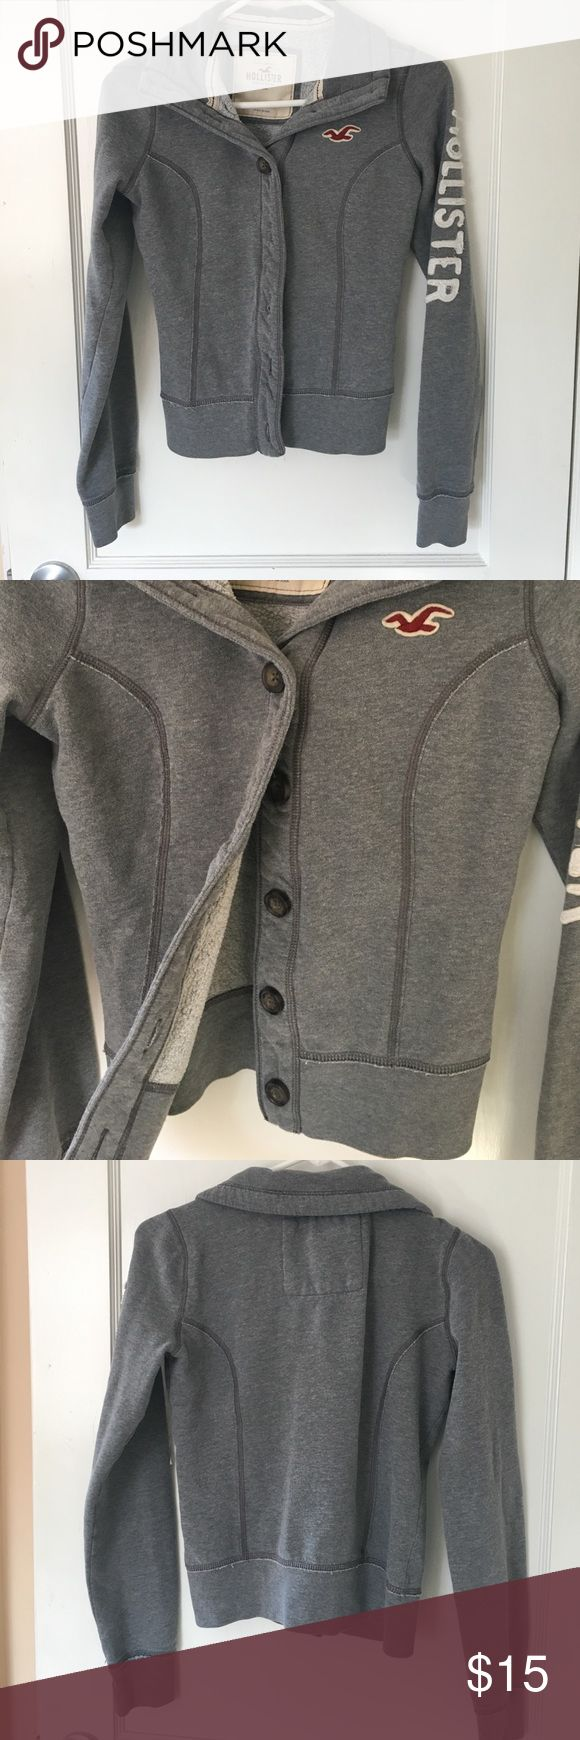 Hollister jacket Gray Hollister jacket with Hollister written down the left arm sleeve in white. Maroon bird on front. Super cute. Only worn a few times. Hollister Jackets & Coats